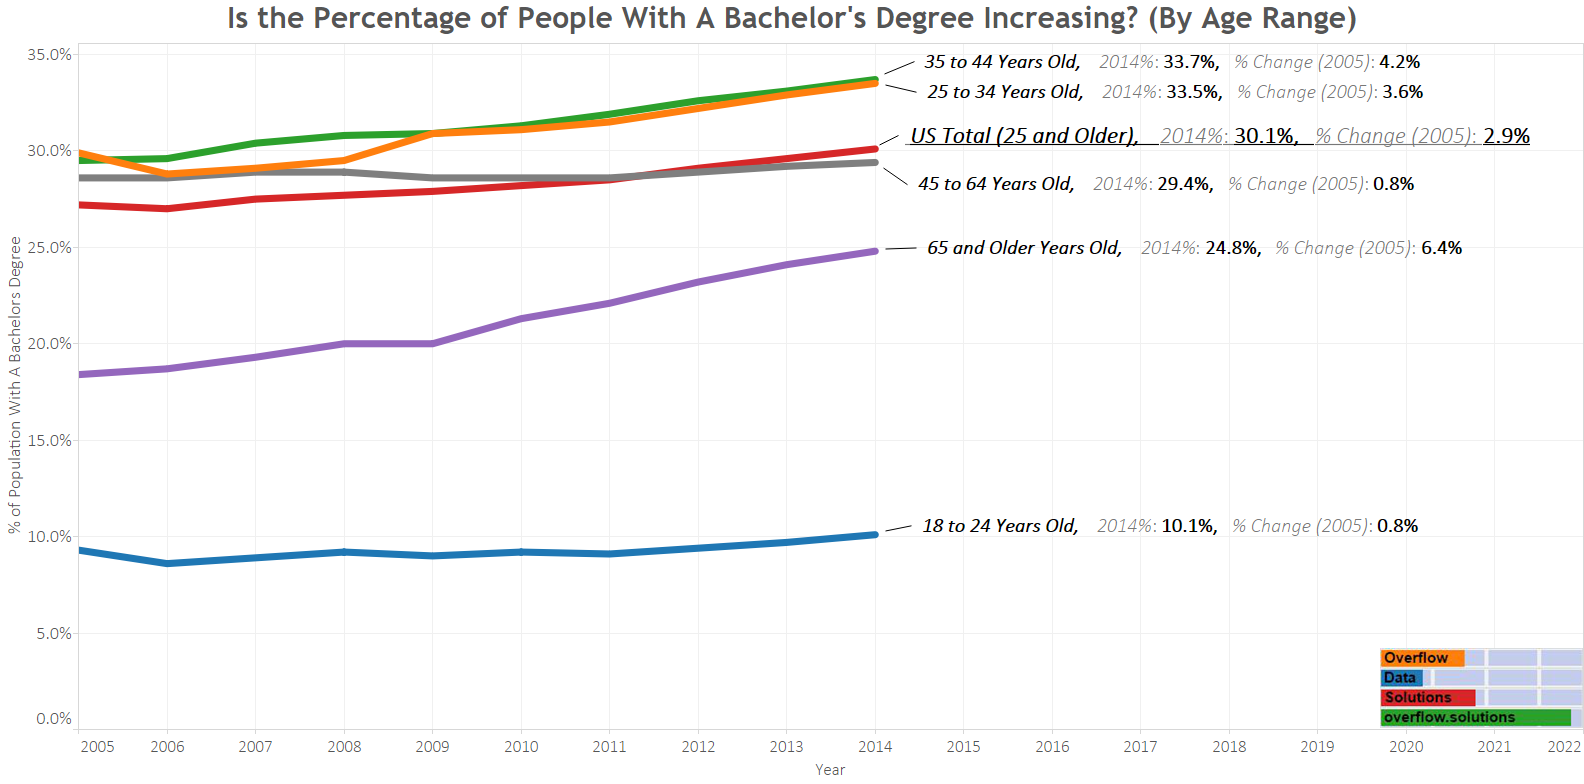 Is the Percentage of People With A Bachelor's Degree Increasing (By Age Range)